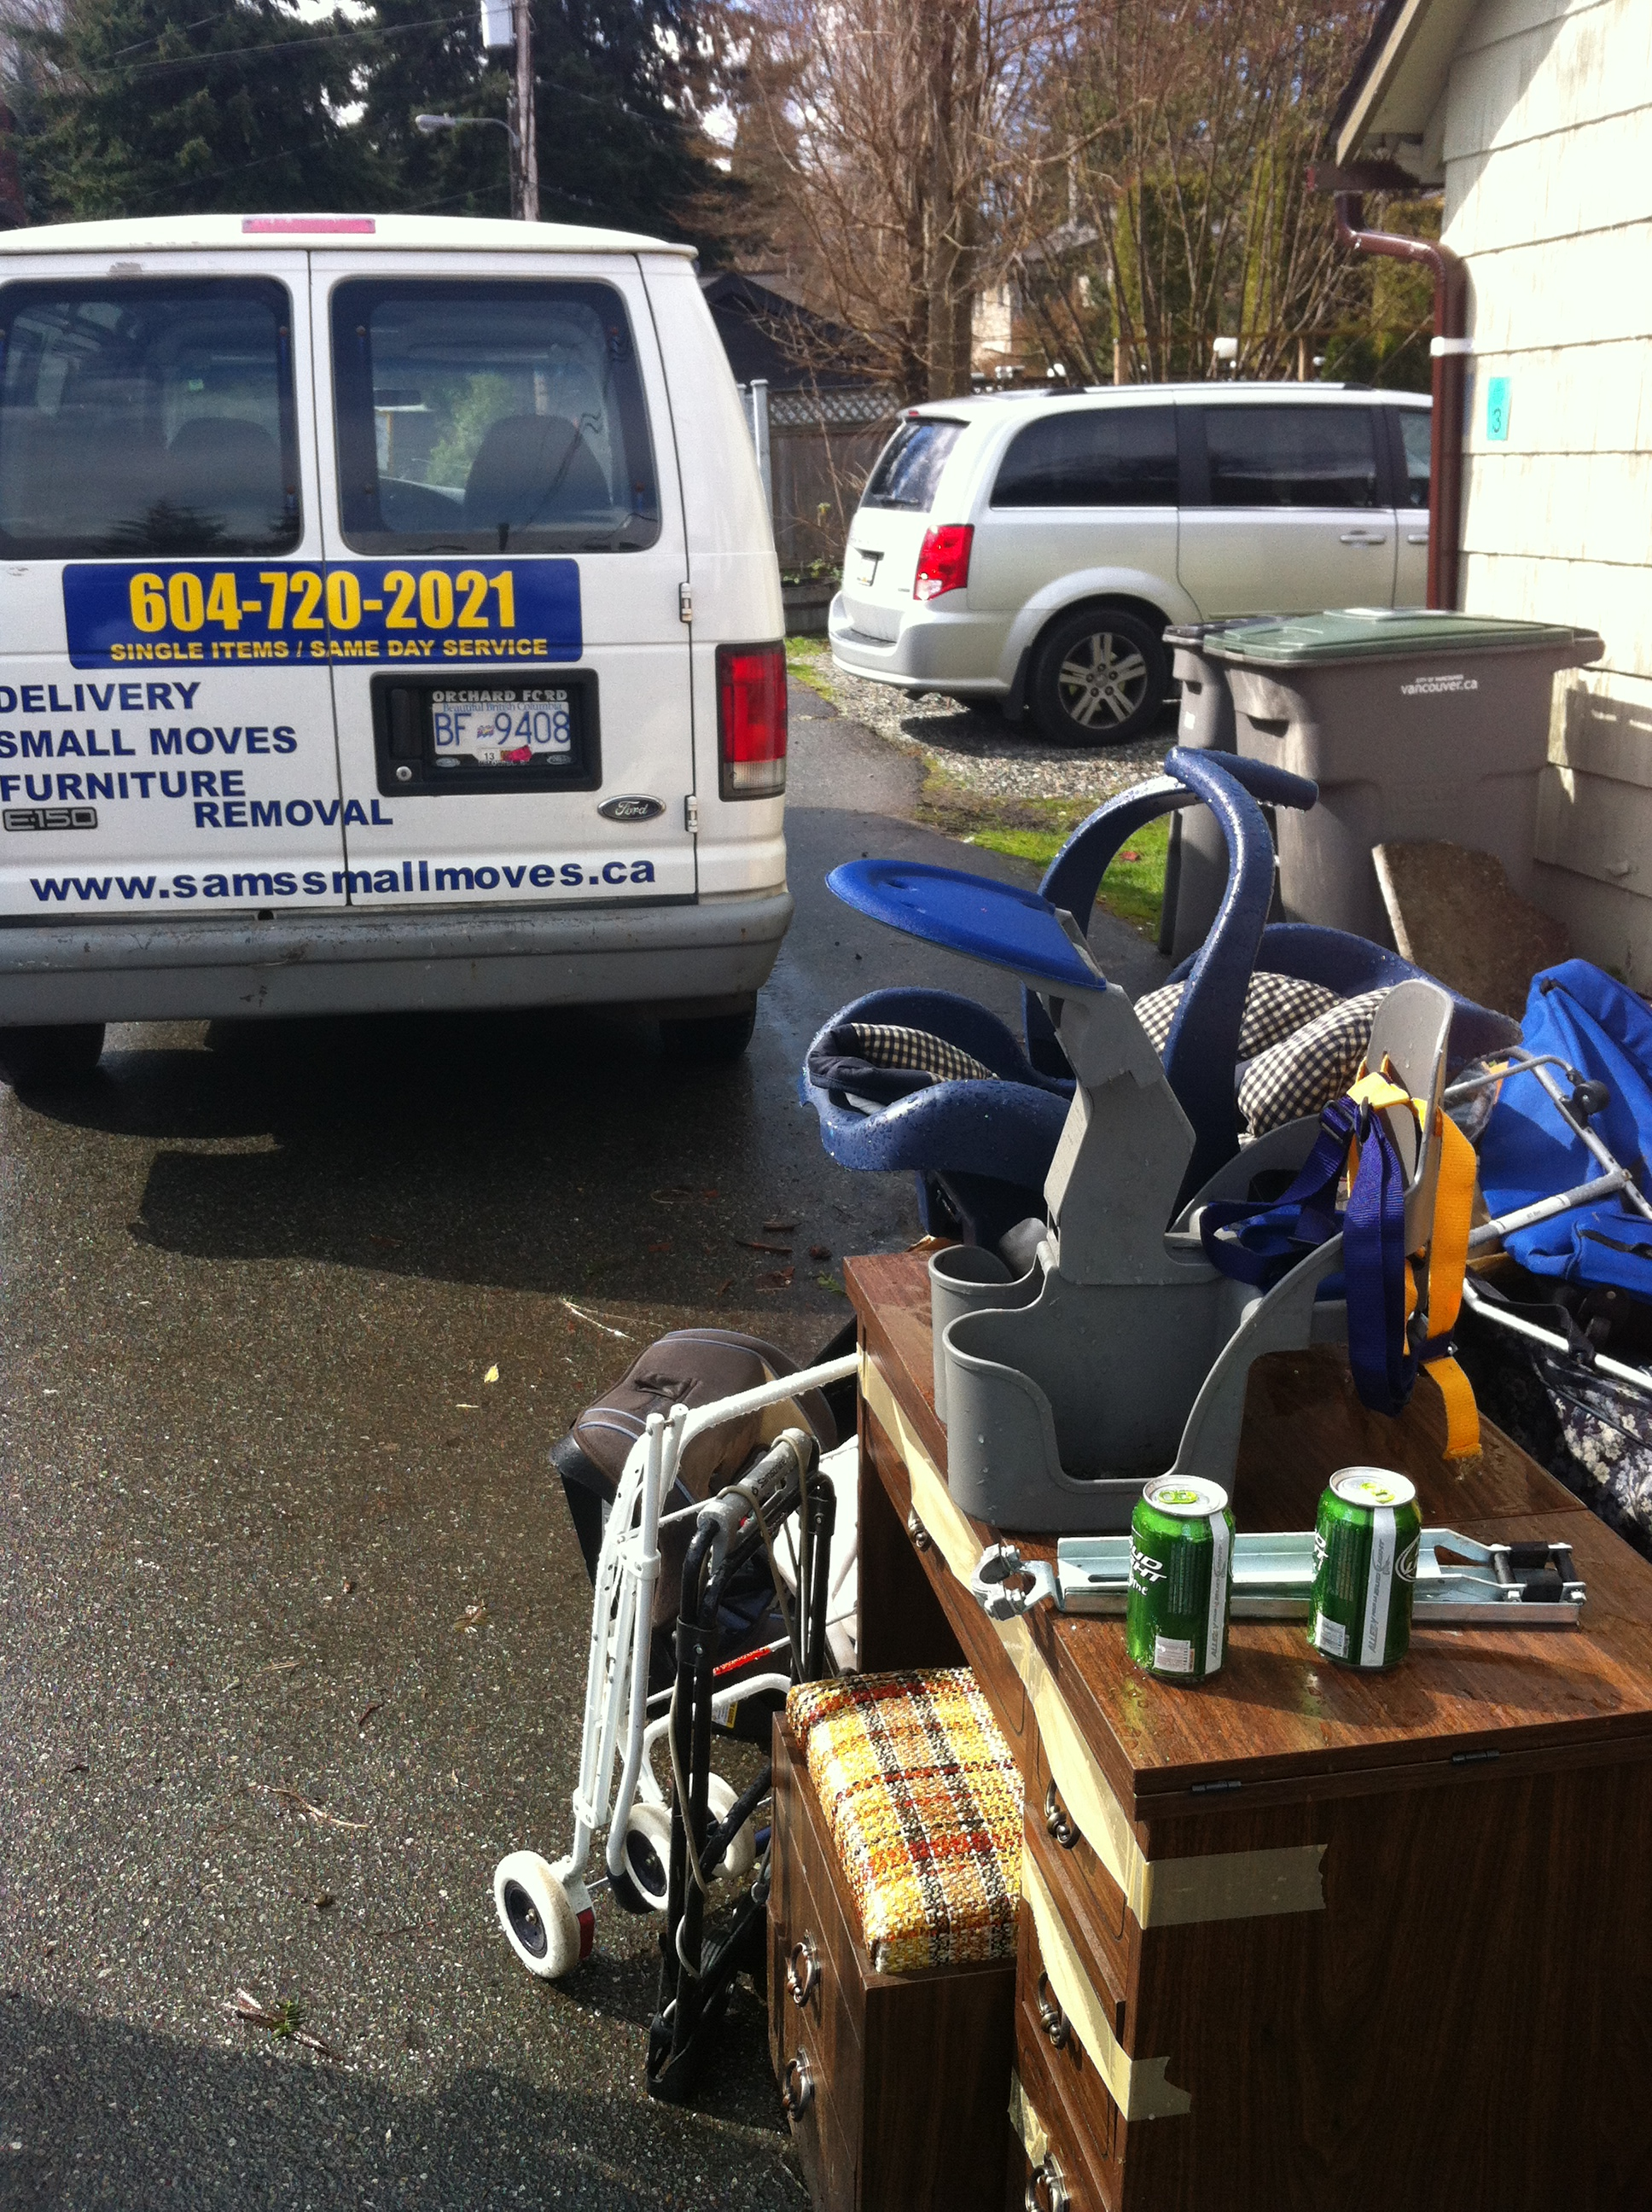 Furniture Removal Services : Old furniture removal service disposal